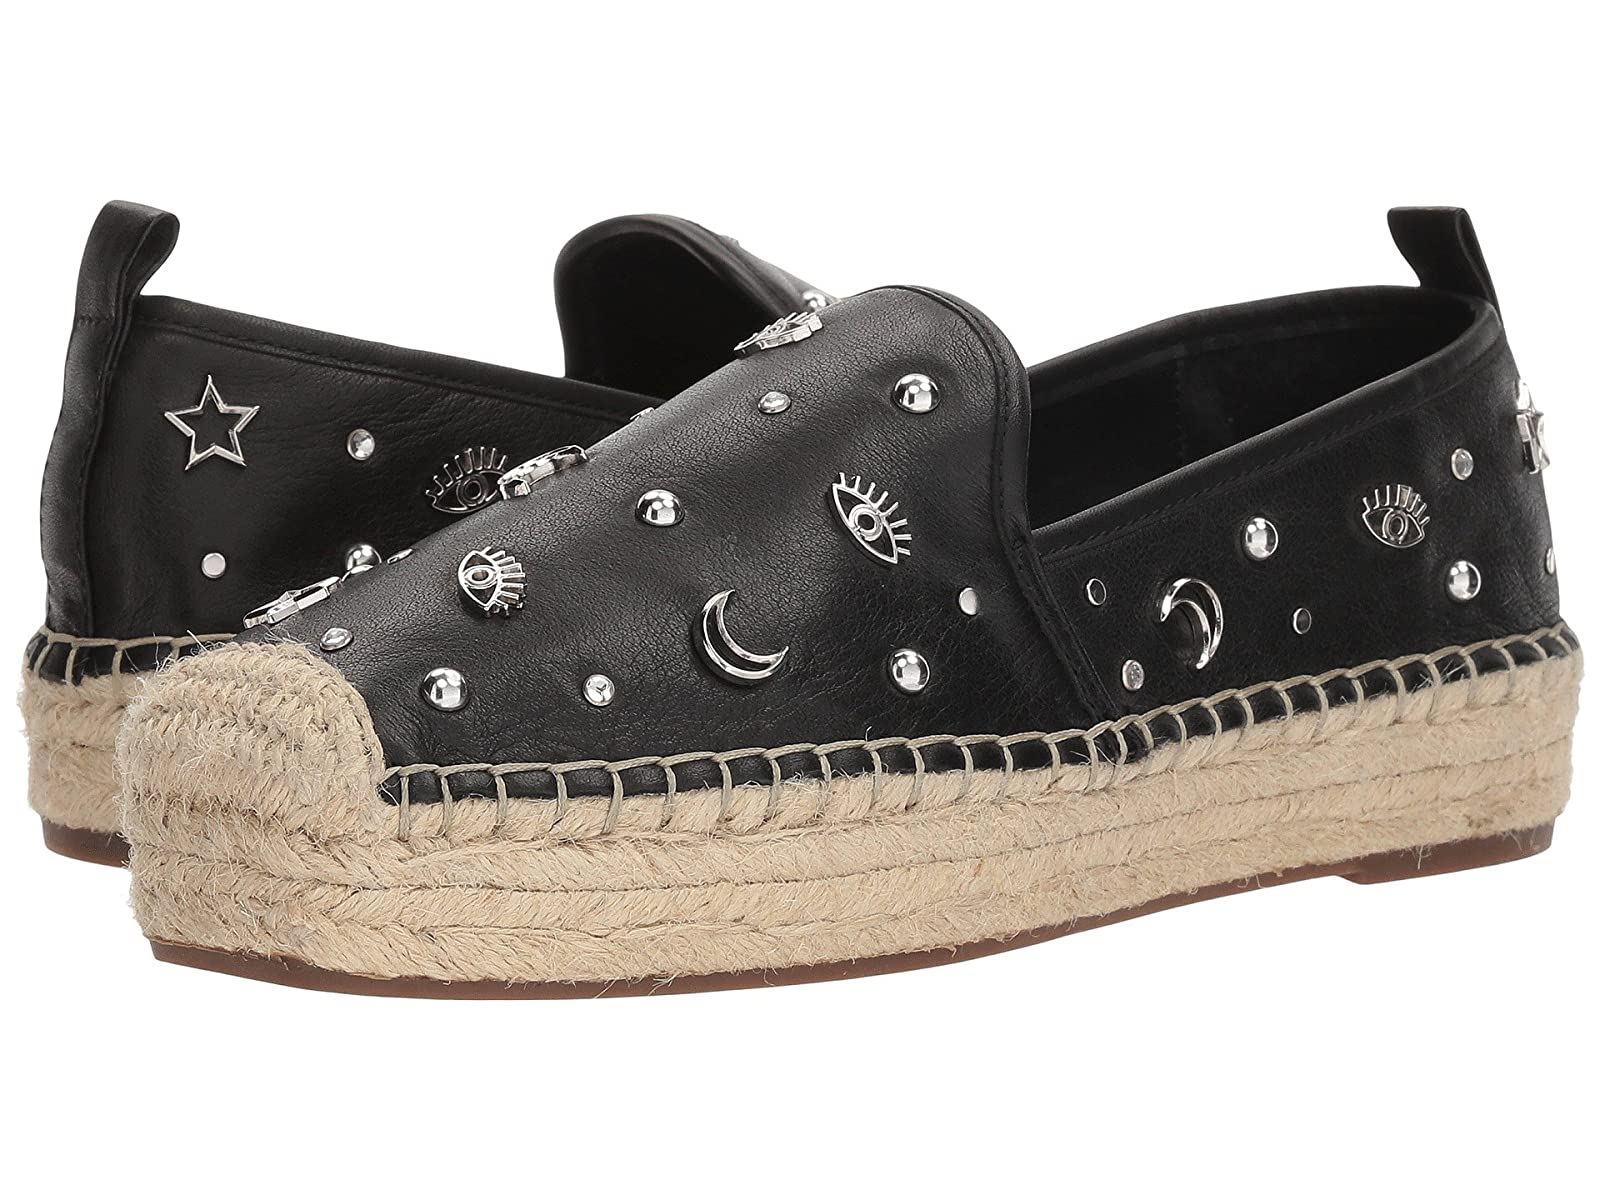 Rebecca Minkoff BeatrizAtmospheric grades have affordable shoes